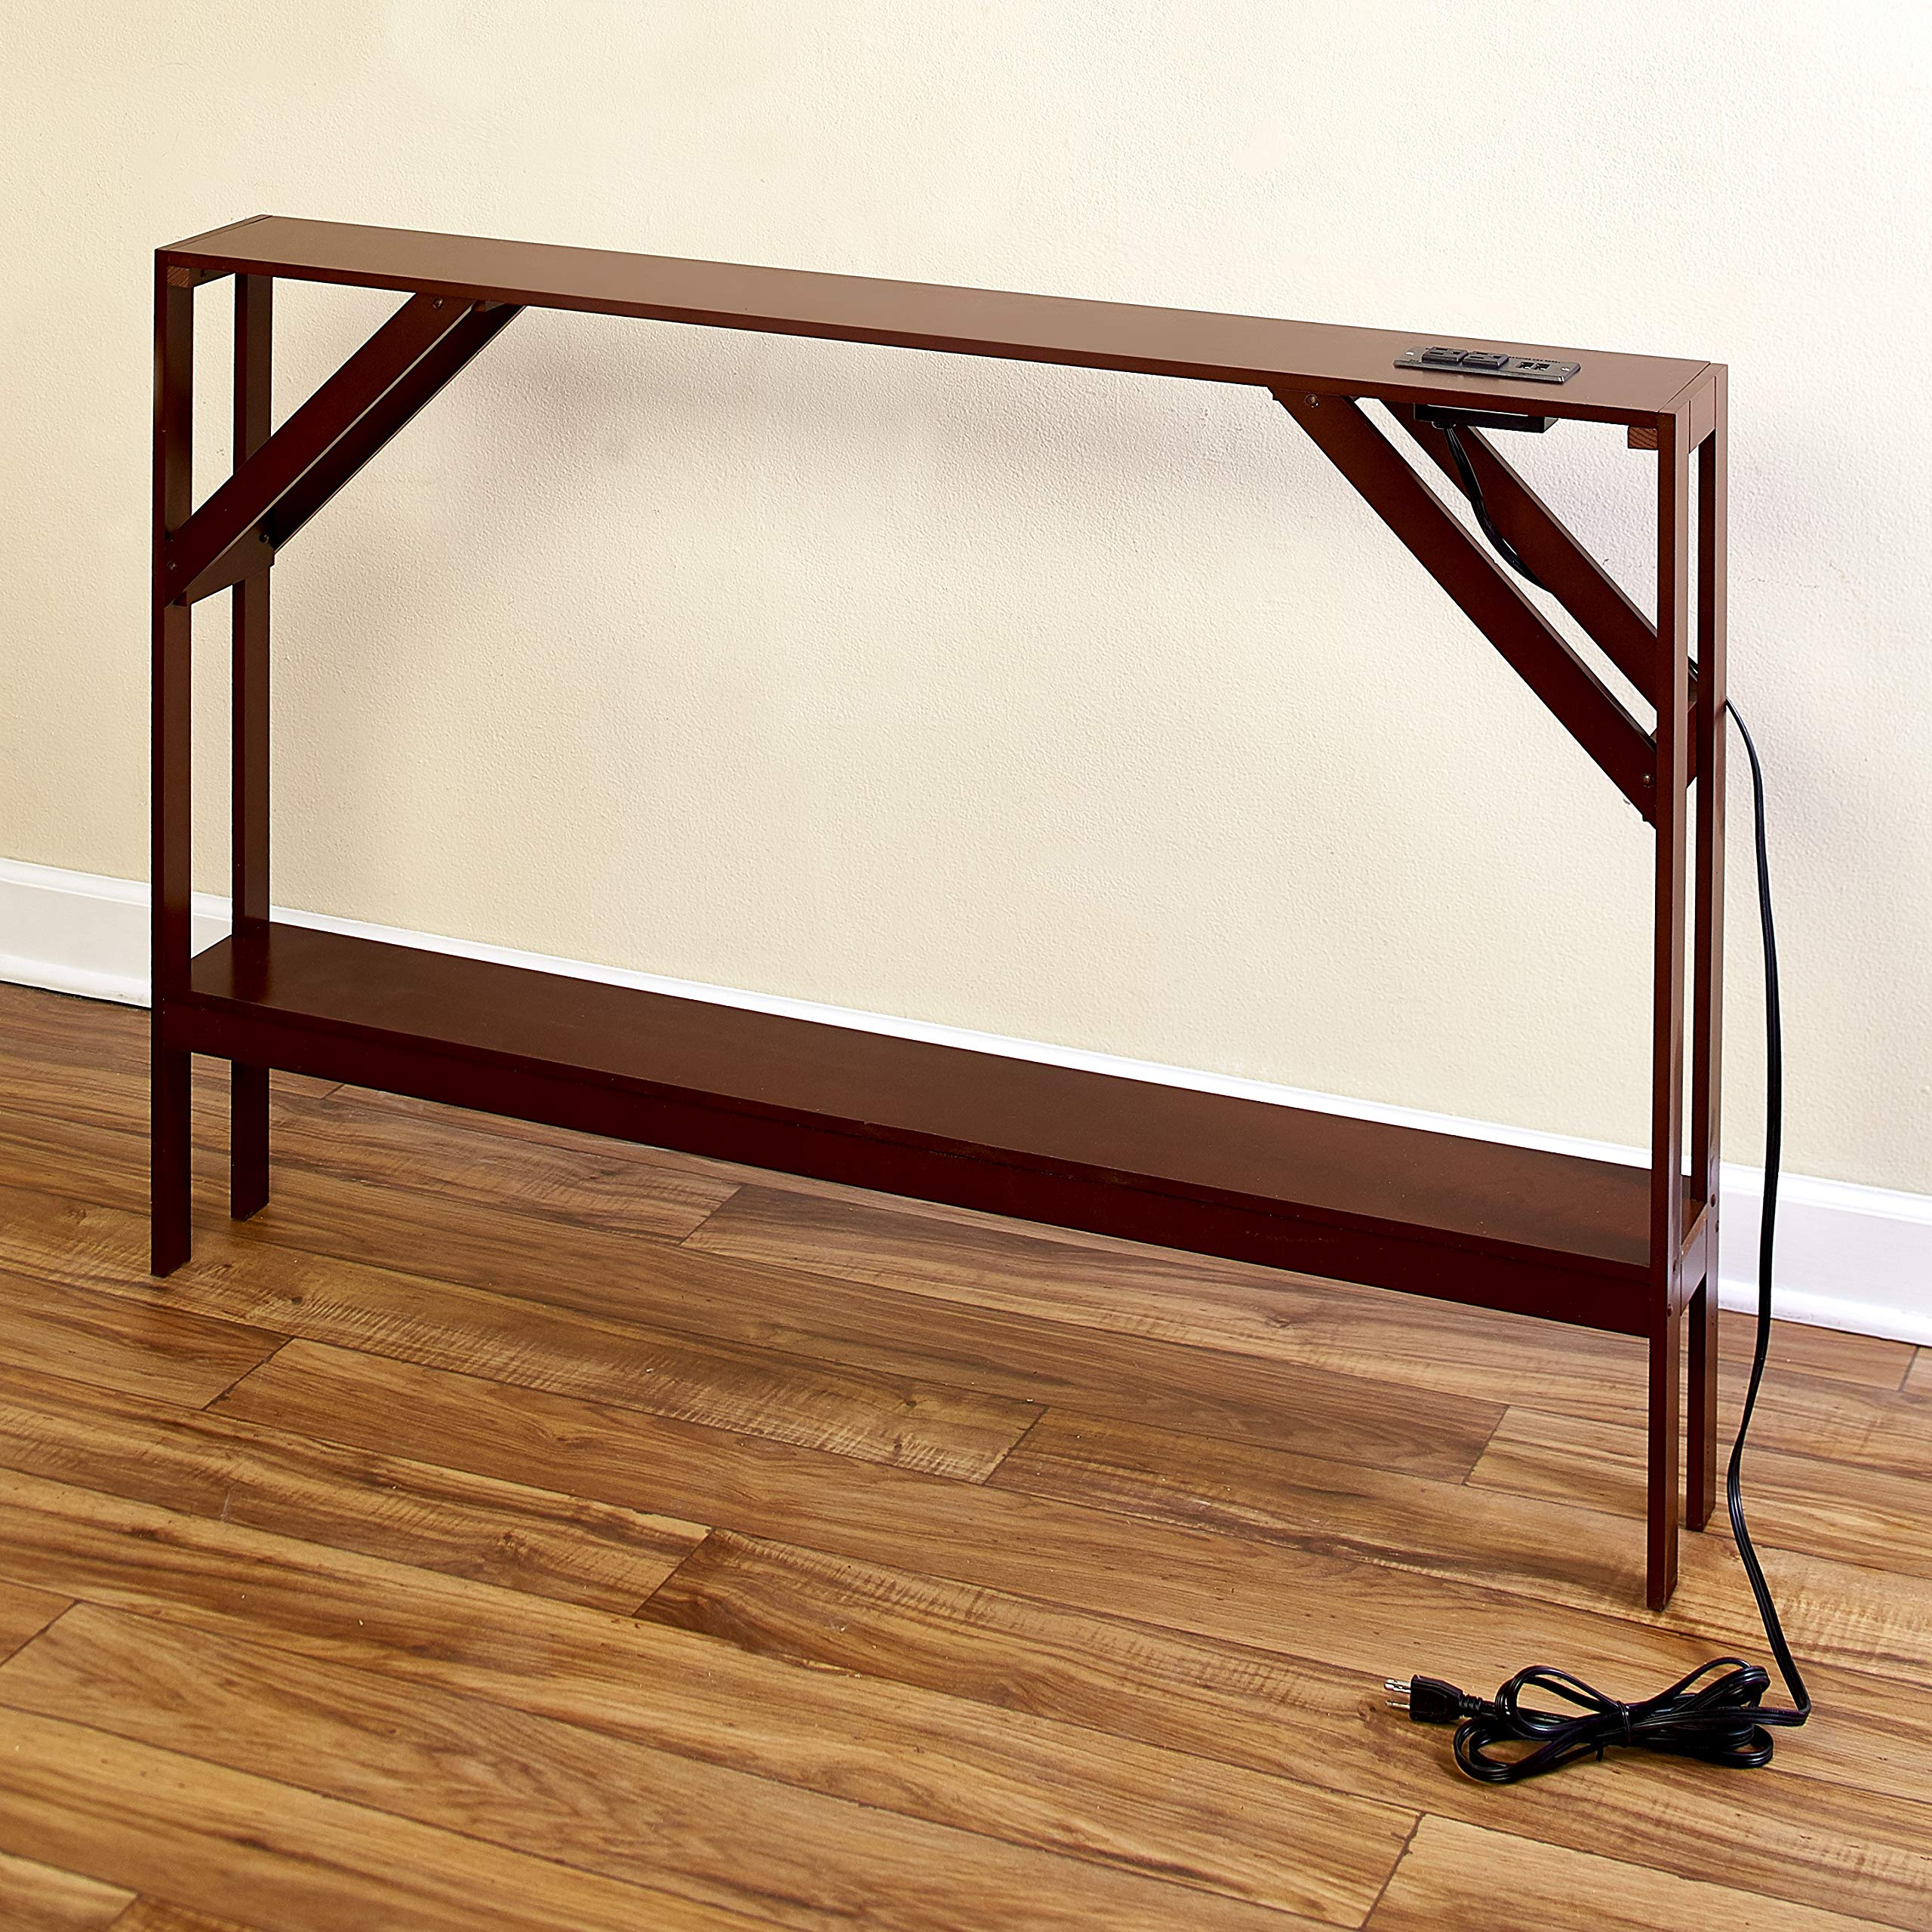 Skinny Sofa Table with Outlet - Modern Accent Table with Walnut Finish by The Lakeside Collection